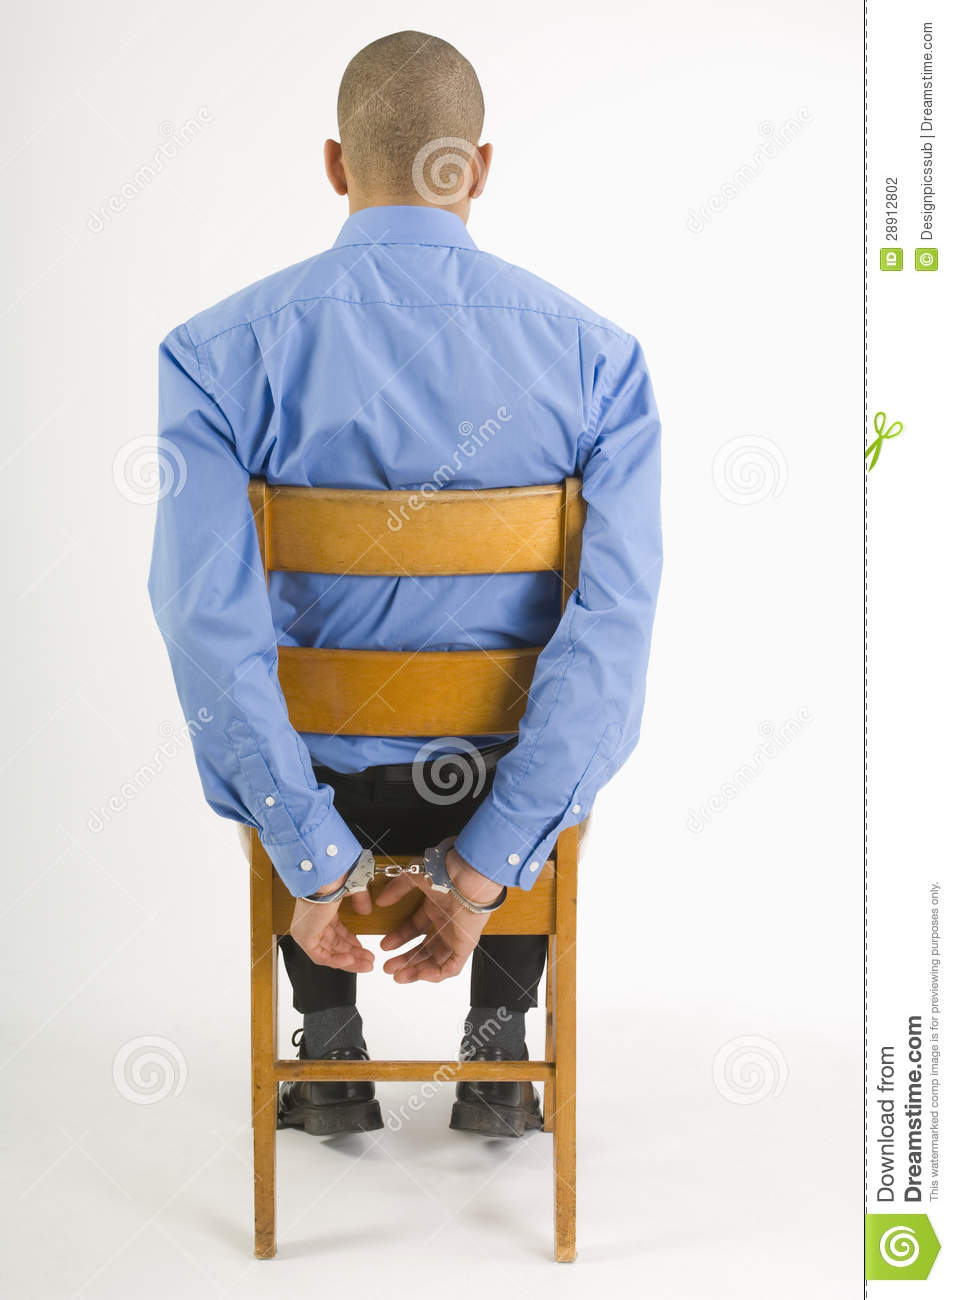 Handcuffed Man Sitting In Chair Stock Photography - Image ...  Handcuffed Man ...